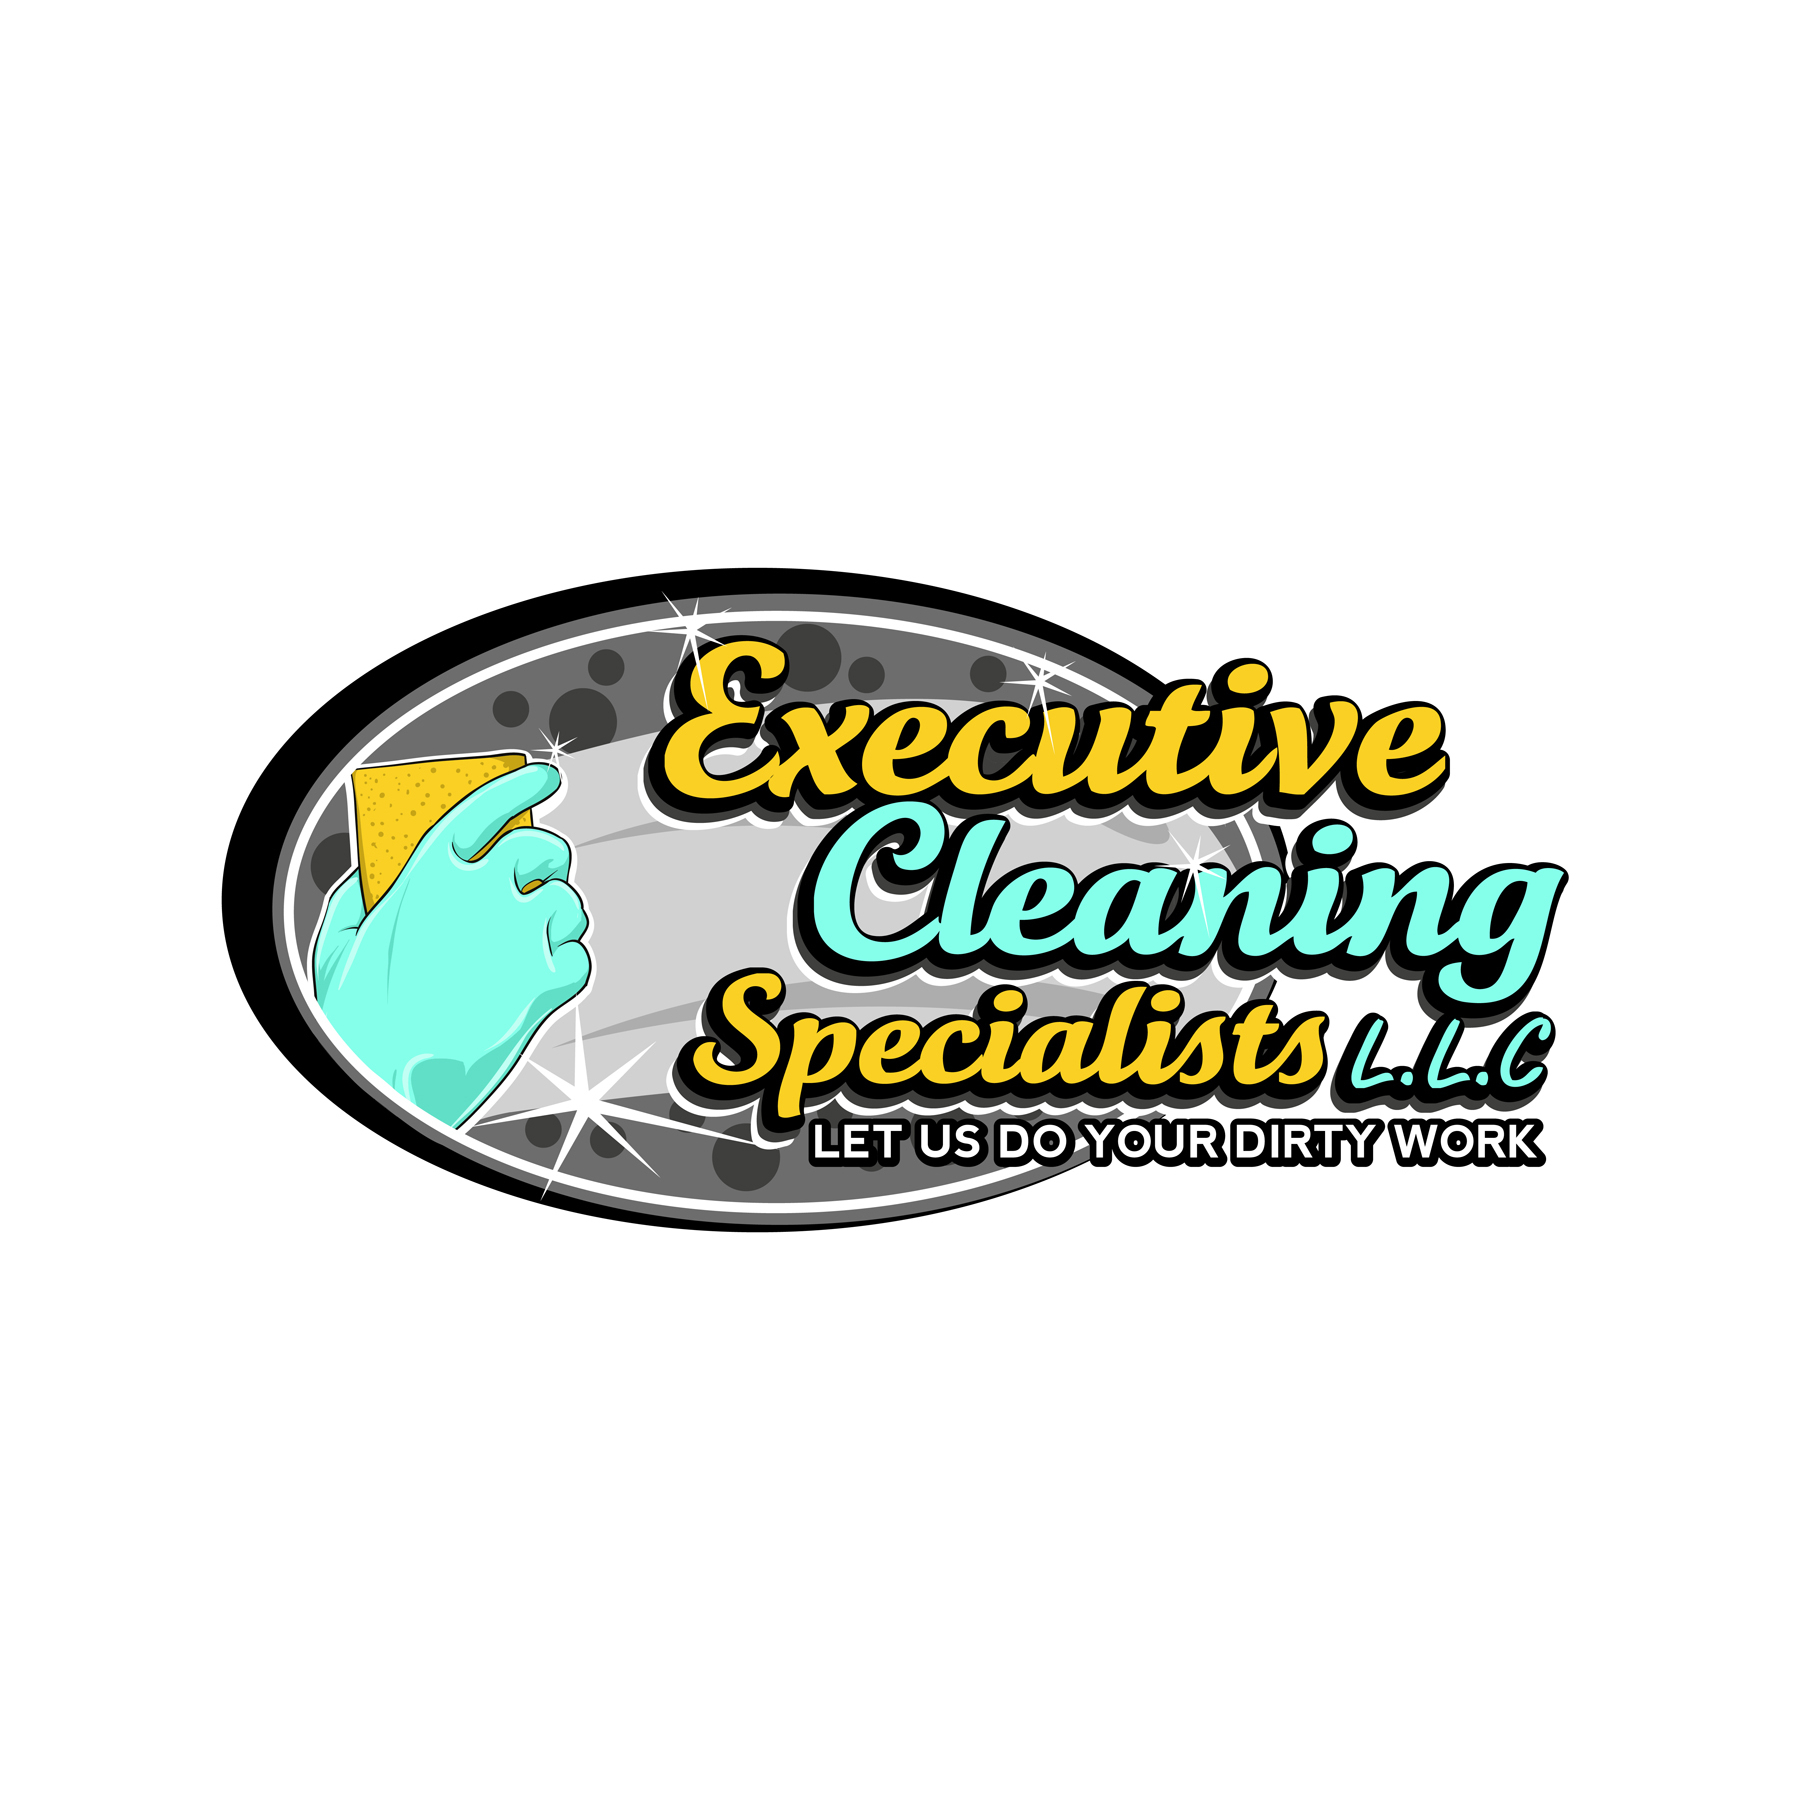 executive cleaning specialists llc